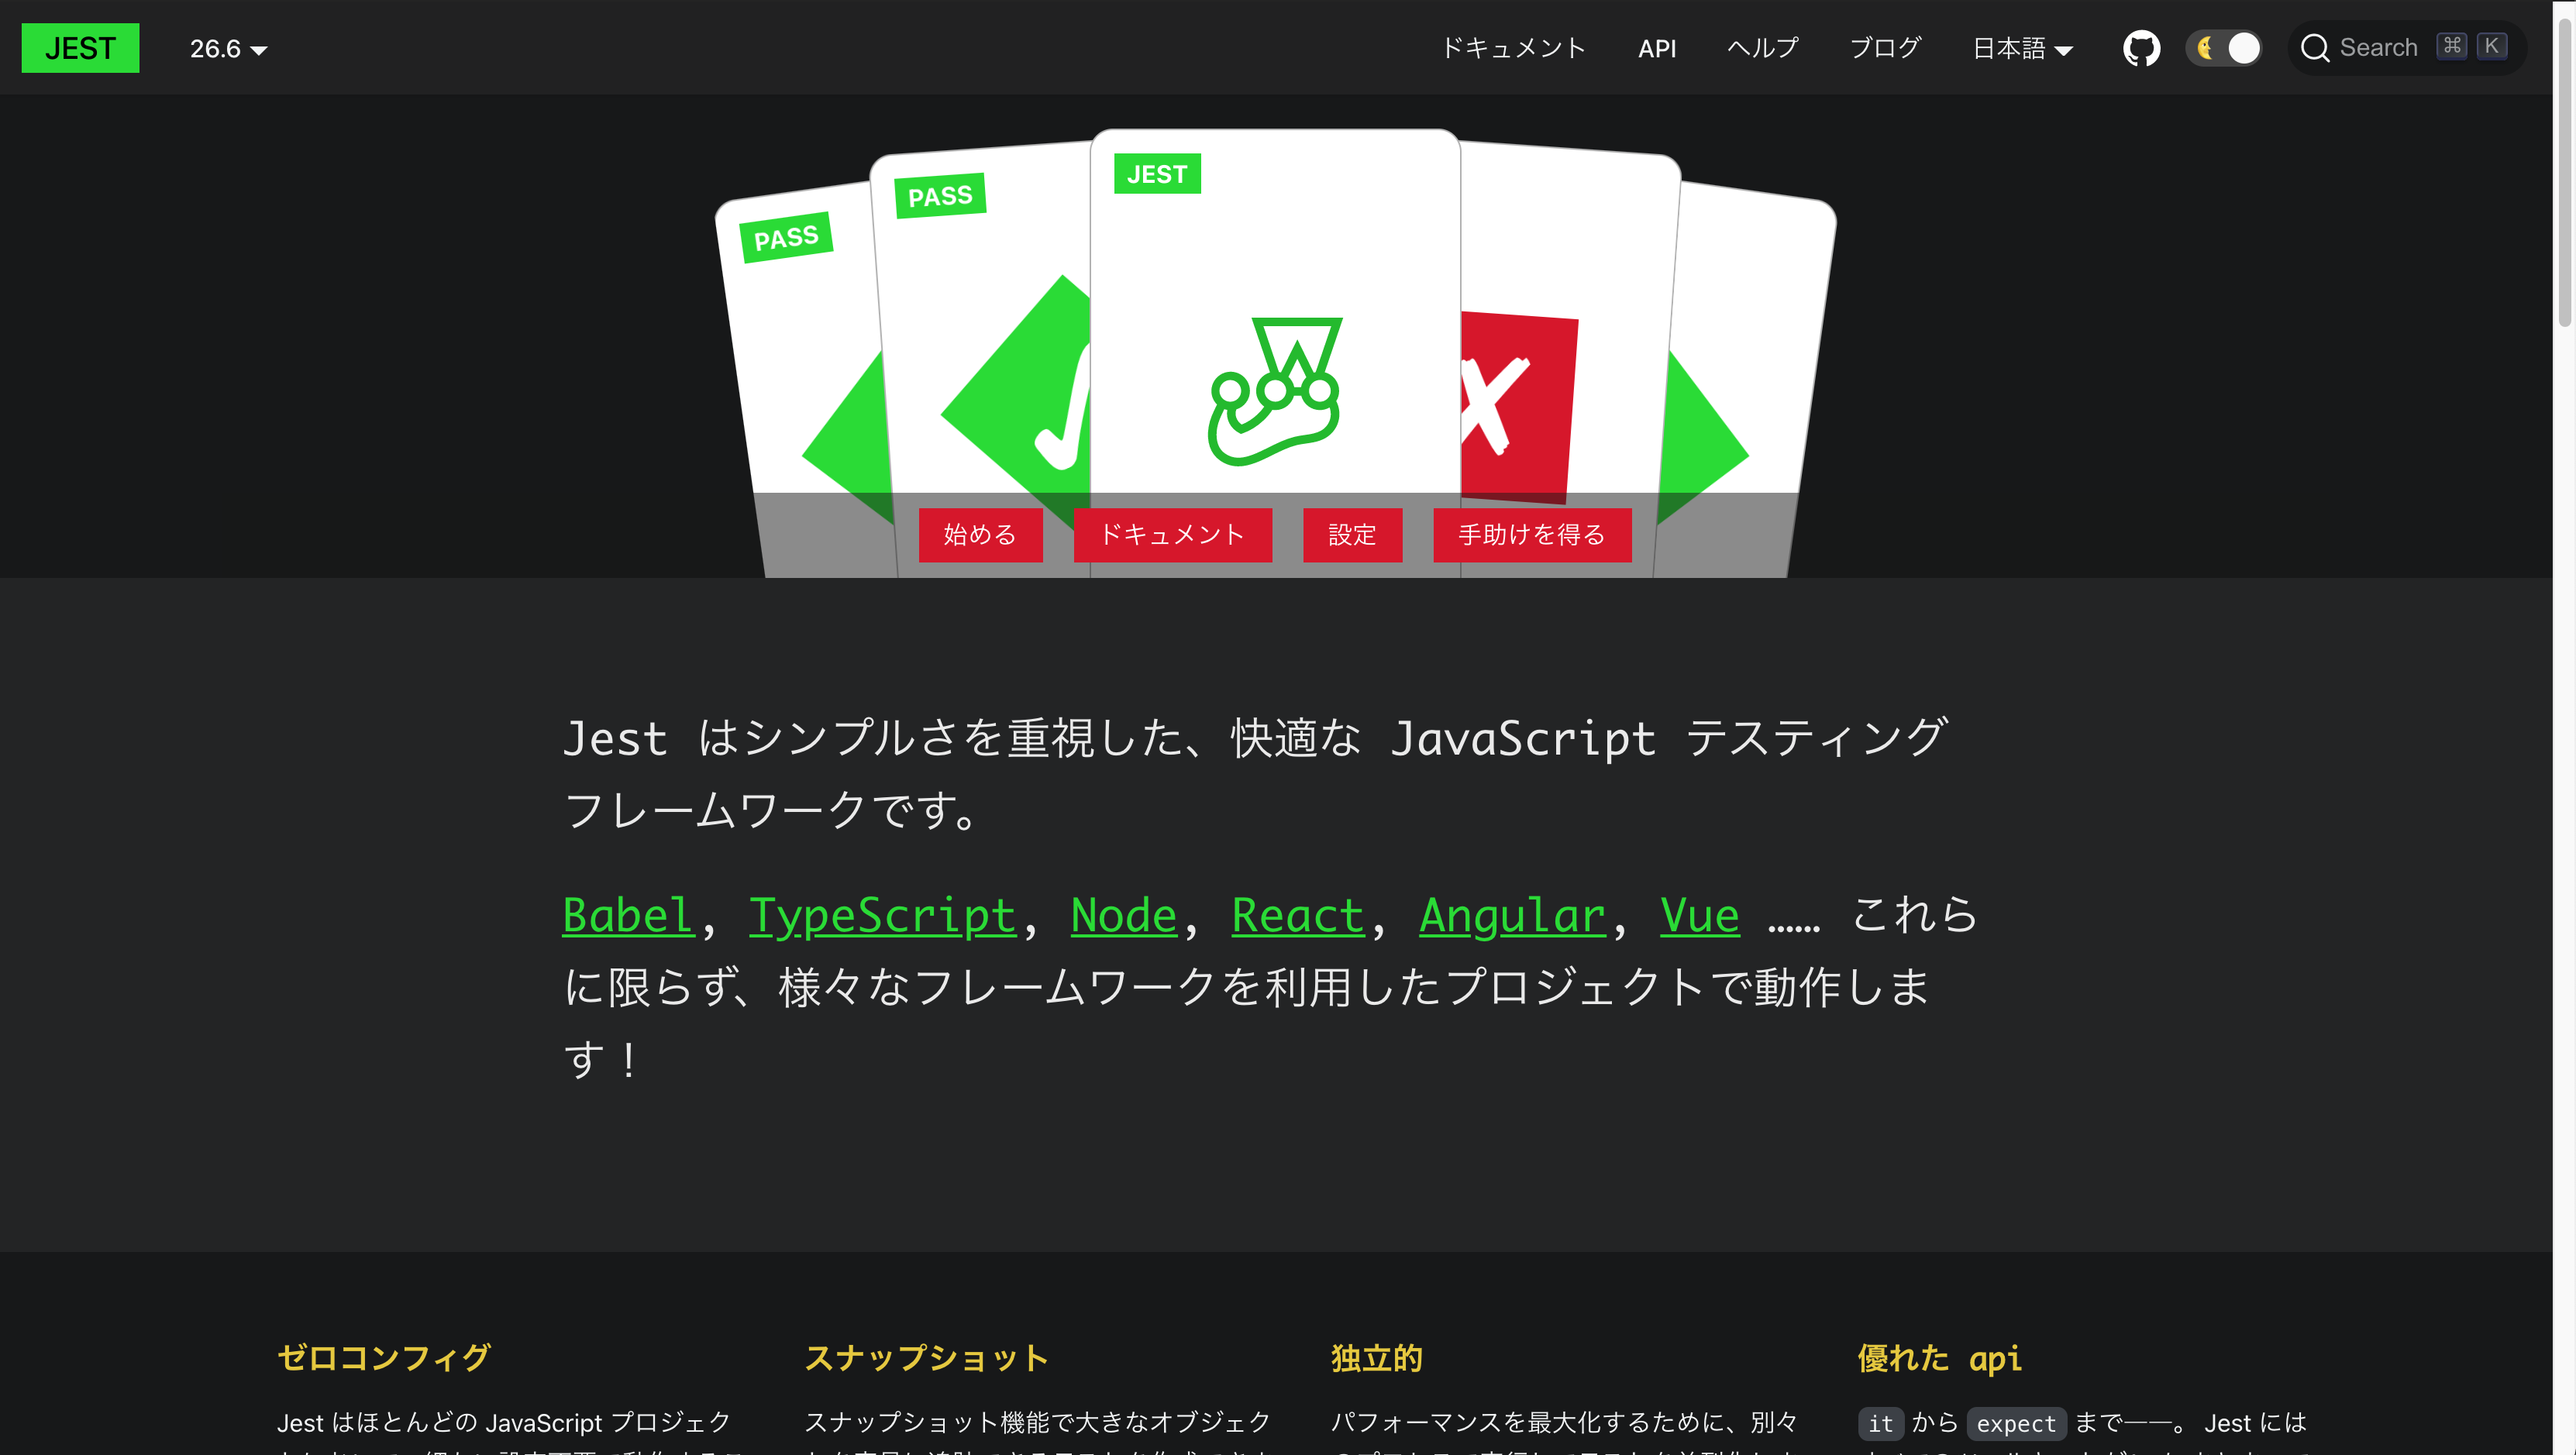 Jest in Japanese screenshot